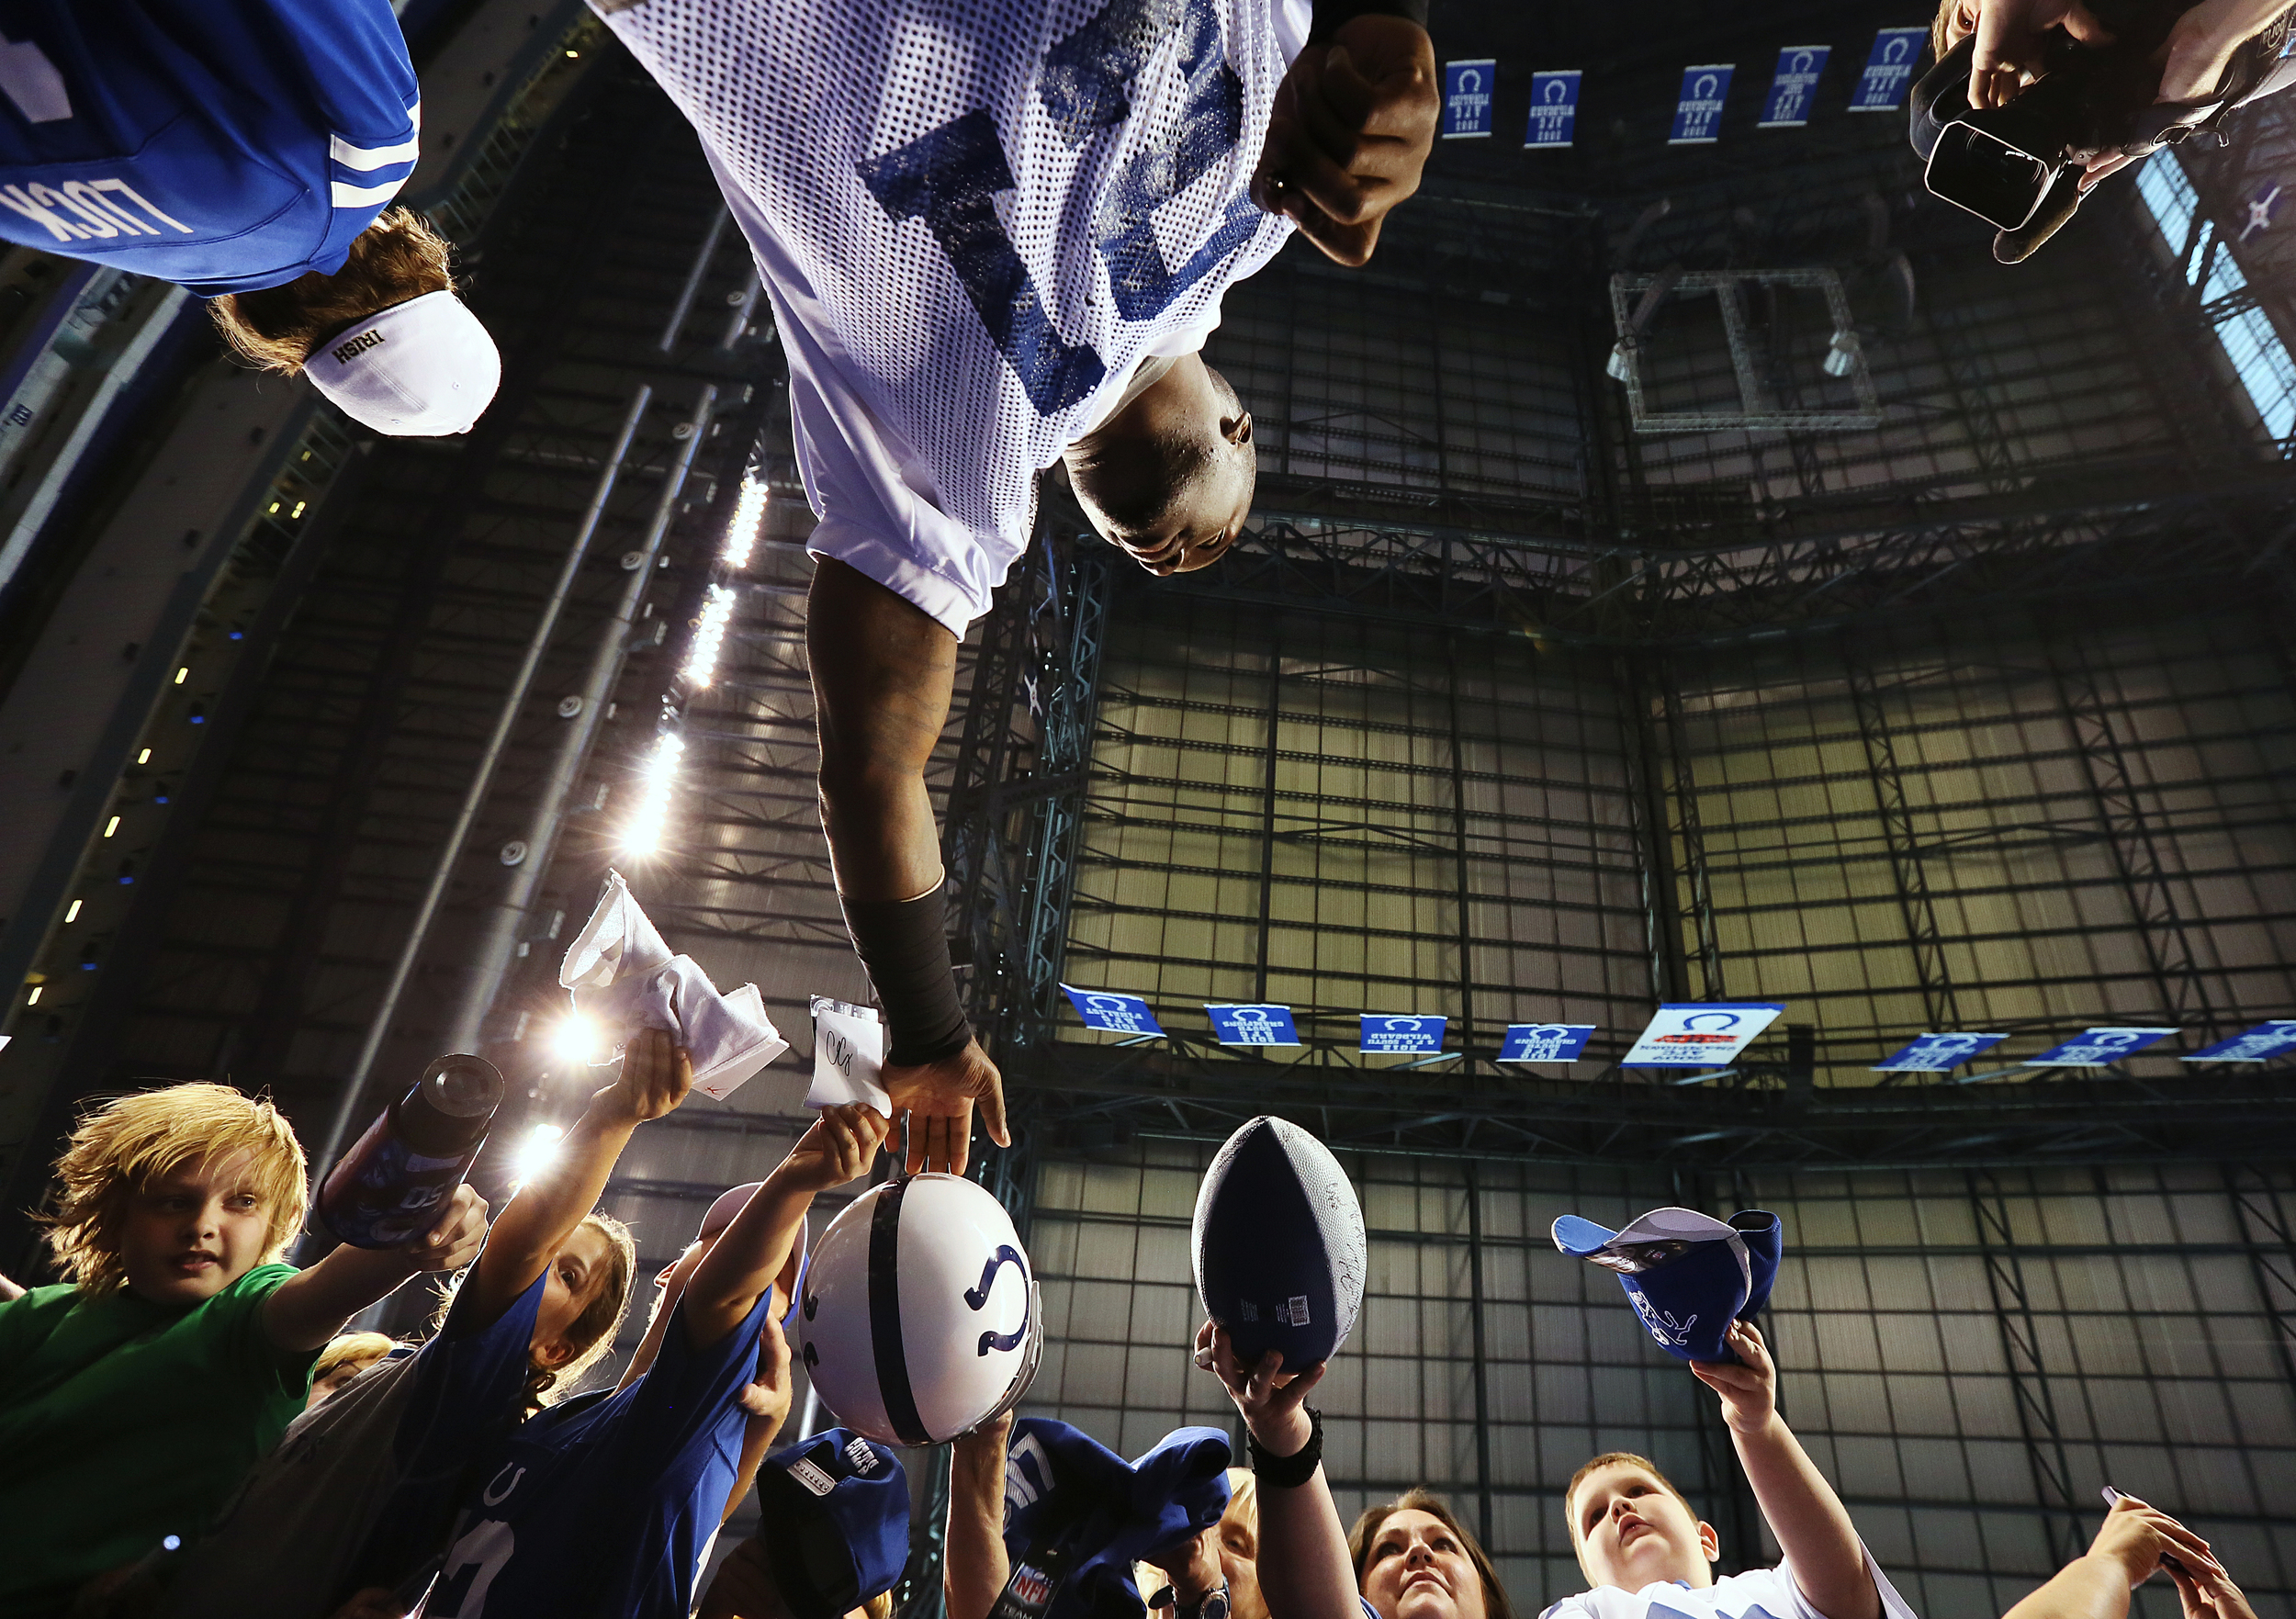 Cornerback Vontae Davis (21) signs autographs for fans before public practice at the annual Indianapolis Colts mini-camp and fan open house, Lucas Oil Stadium, Wednesday, June 10, 2015, Indianapolis, Ind.